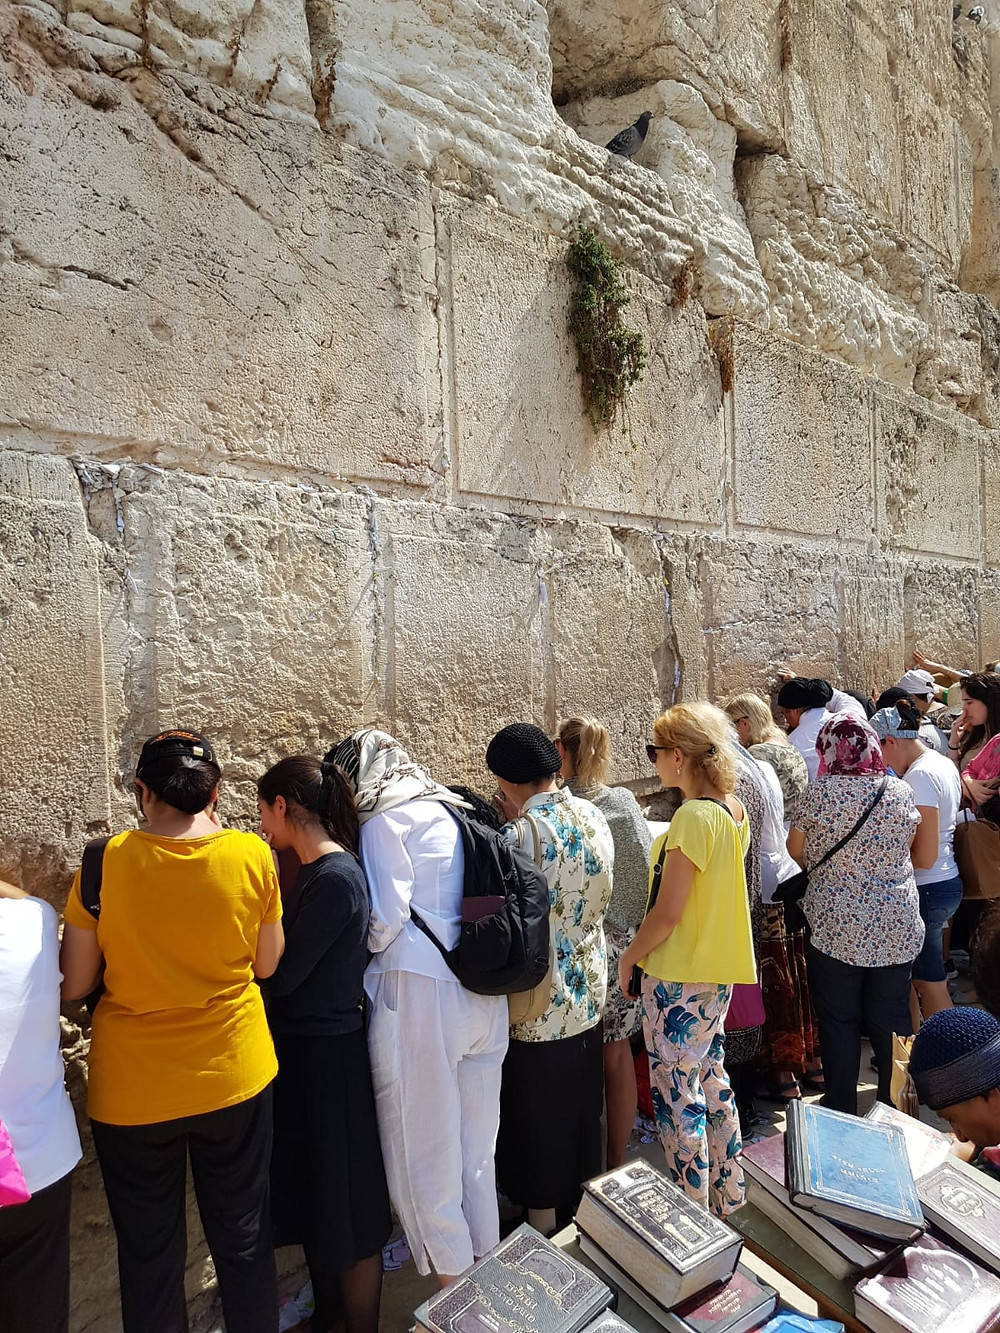 Short sleeves and pants are perfectly appropriate at the Western Wall. Whether you cover your head or not is completely up to you.